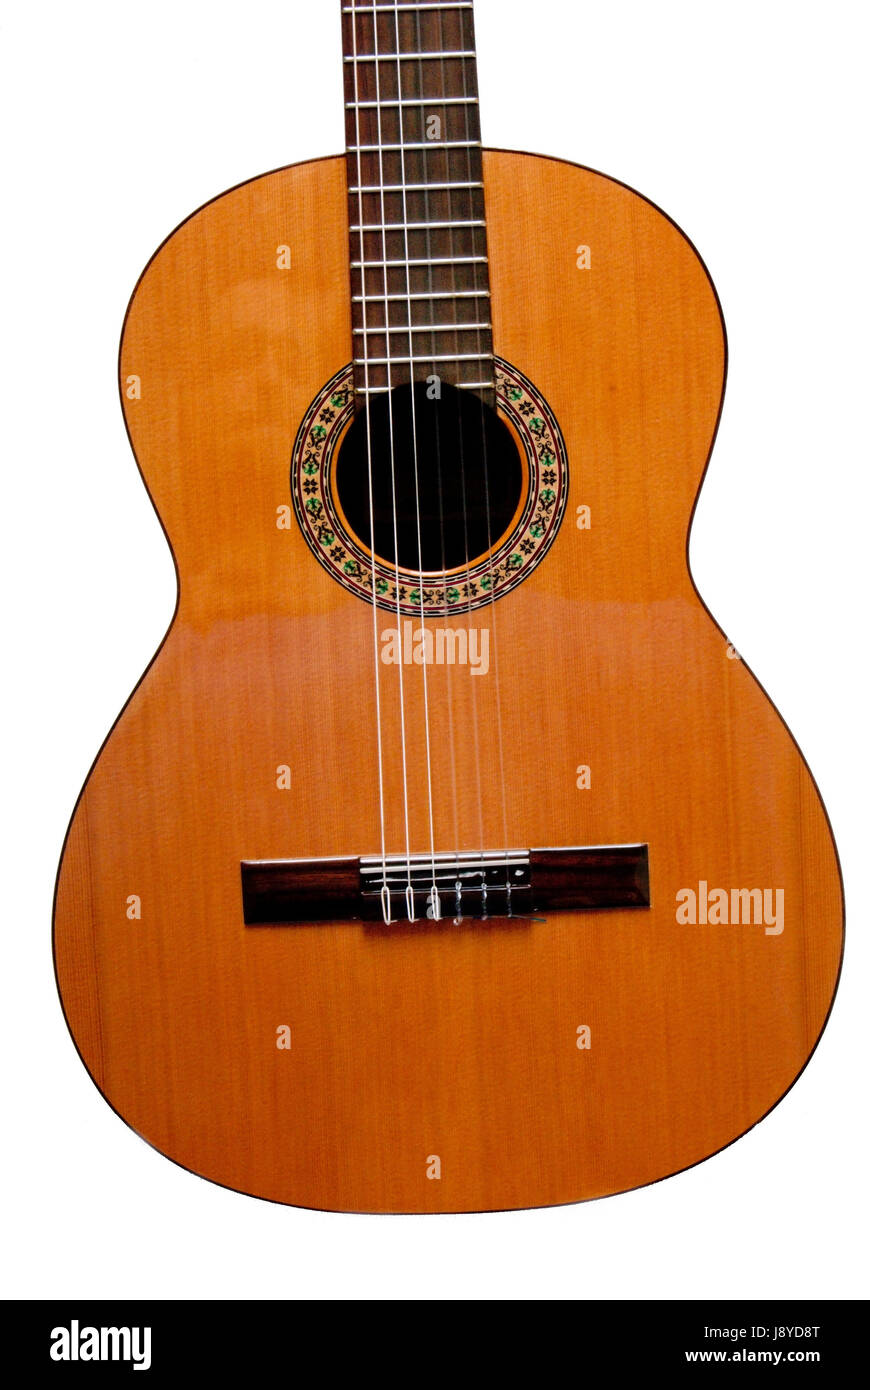 music, make music, guitar, strings, stringed instrument, design, shaping, - Stock Image